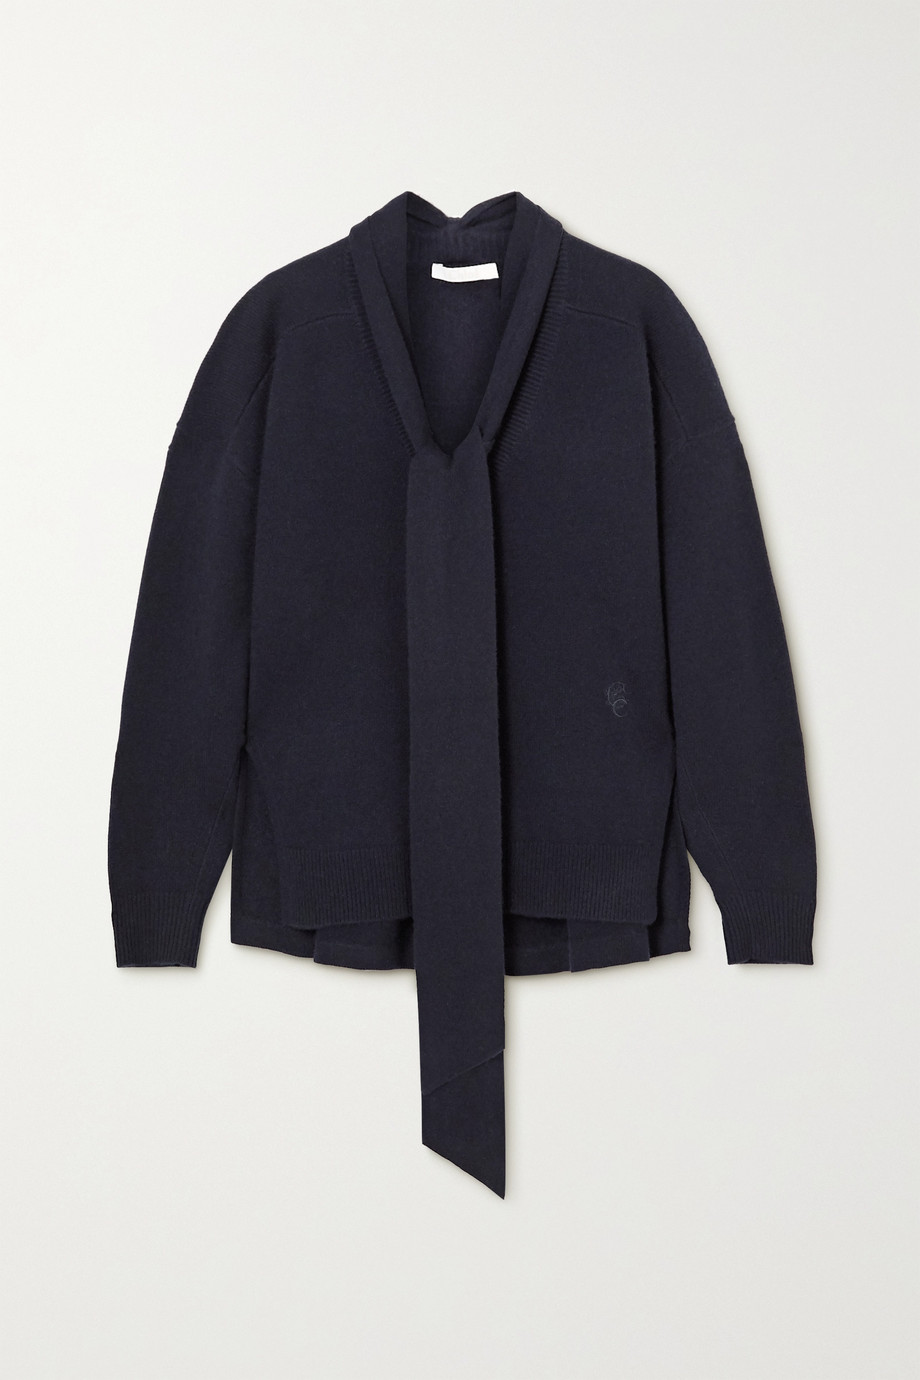 Chloé Tie-detailed cashmere sweater